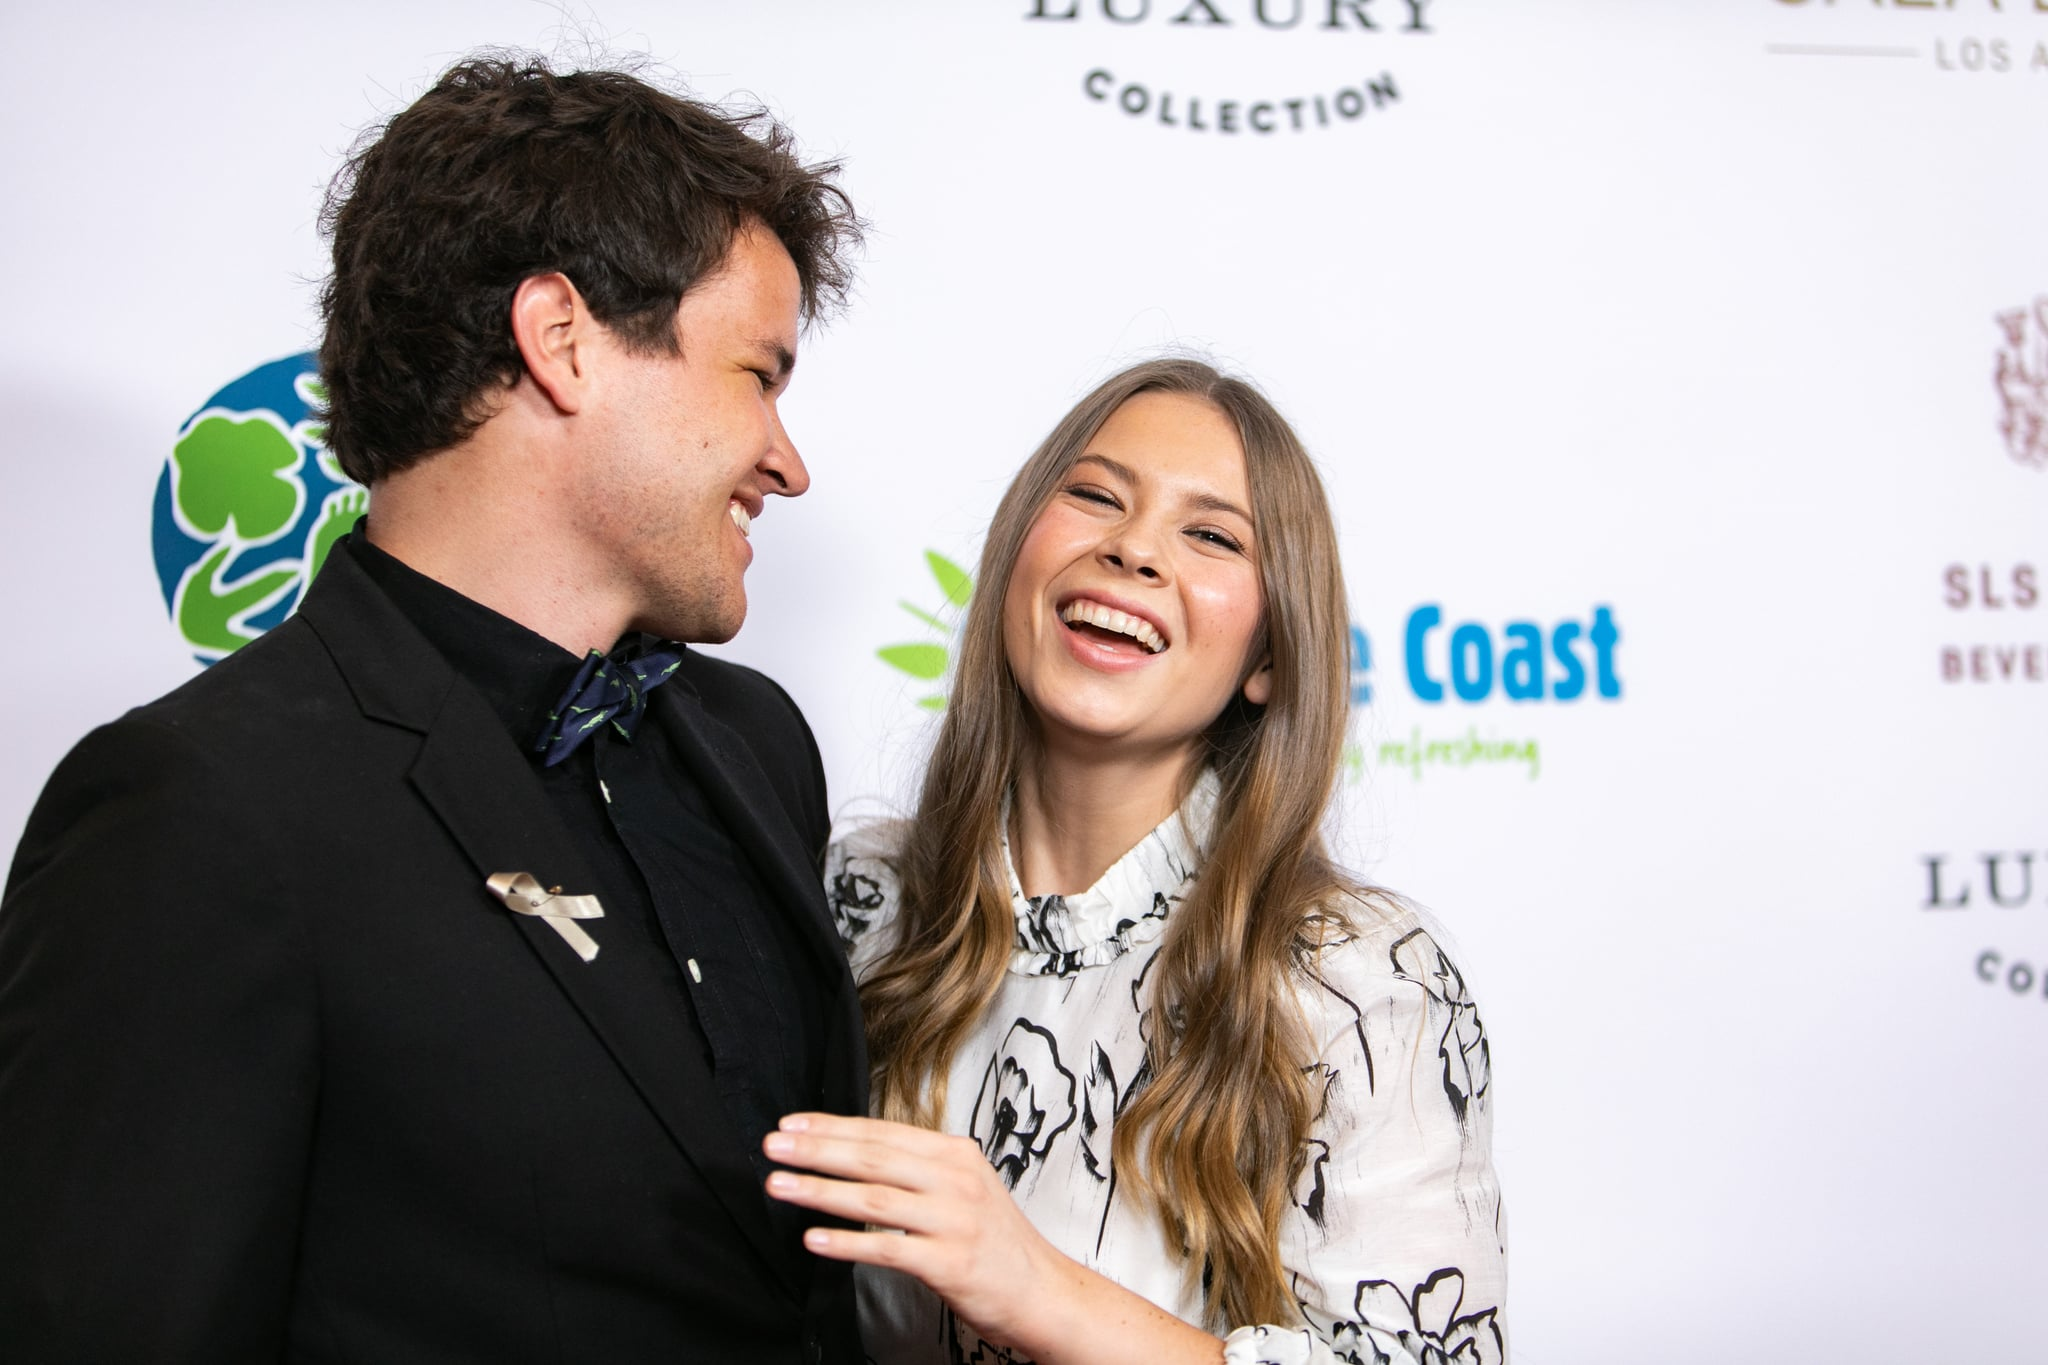 BEVERLY HILLS, CALIFORNIA - MAY 04: Chandler Powell and Bindi Irwin attend the Steve Irwin Gala Dinner at SLS Hotel on May 04, 2019 in Beverly Hills, California. (Photo by John Wolfsohn/Getty Images)